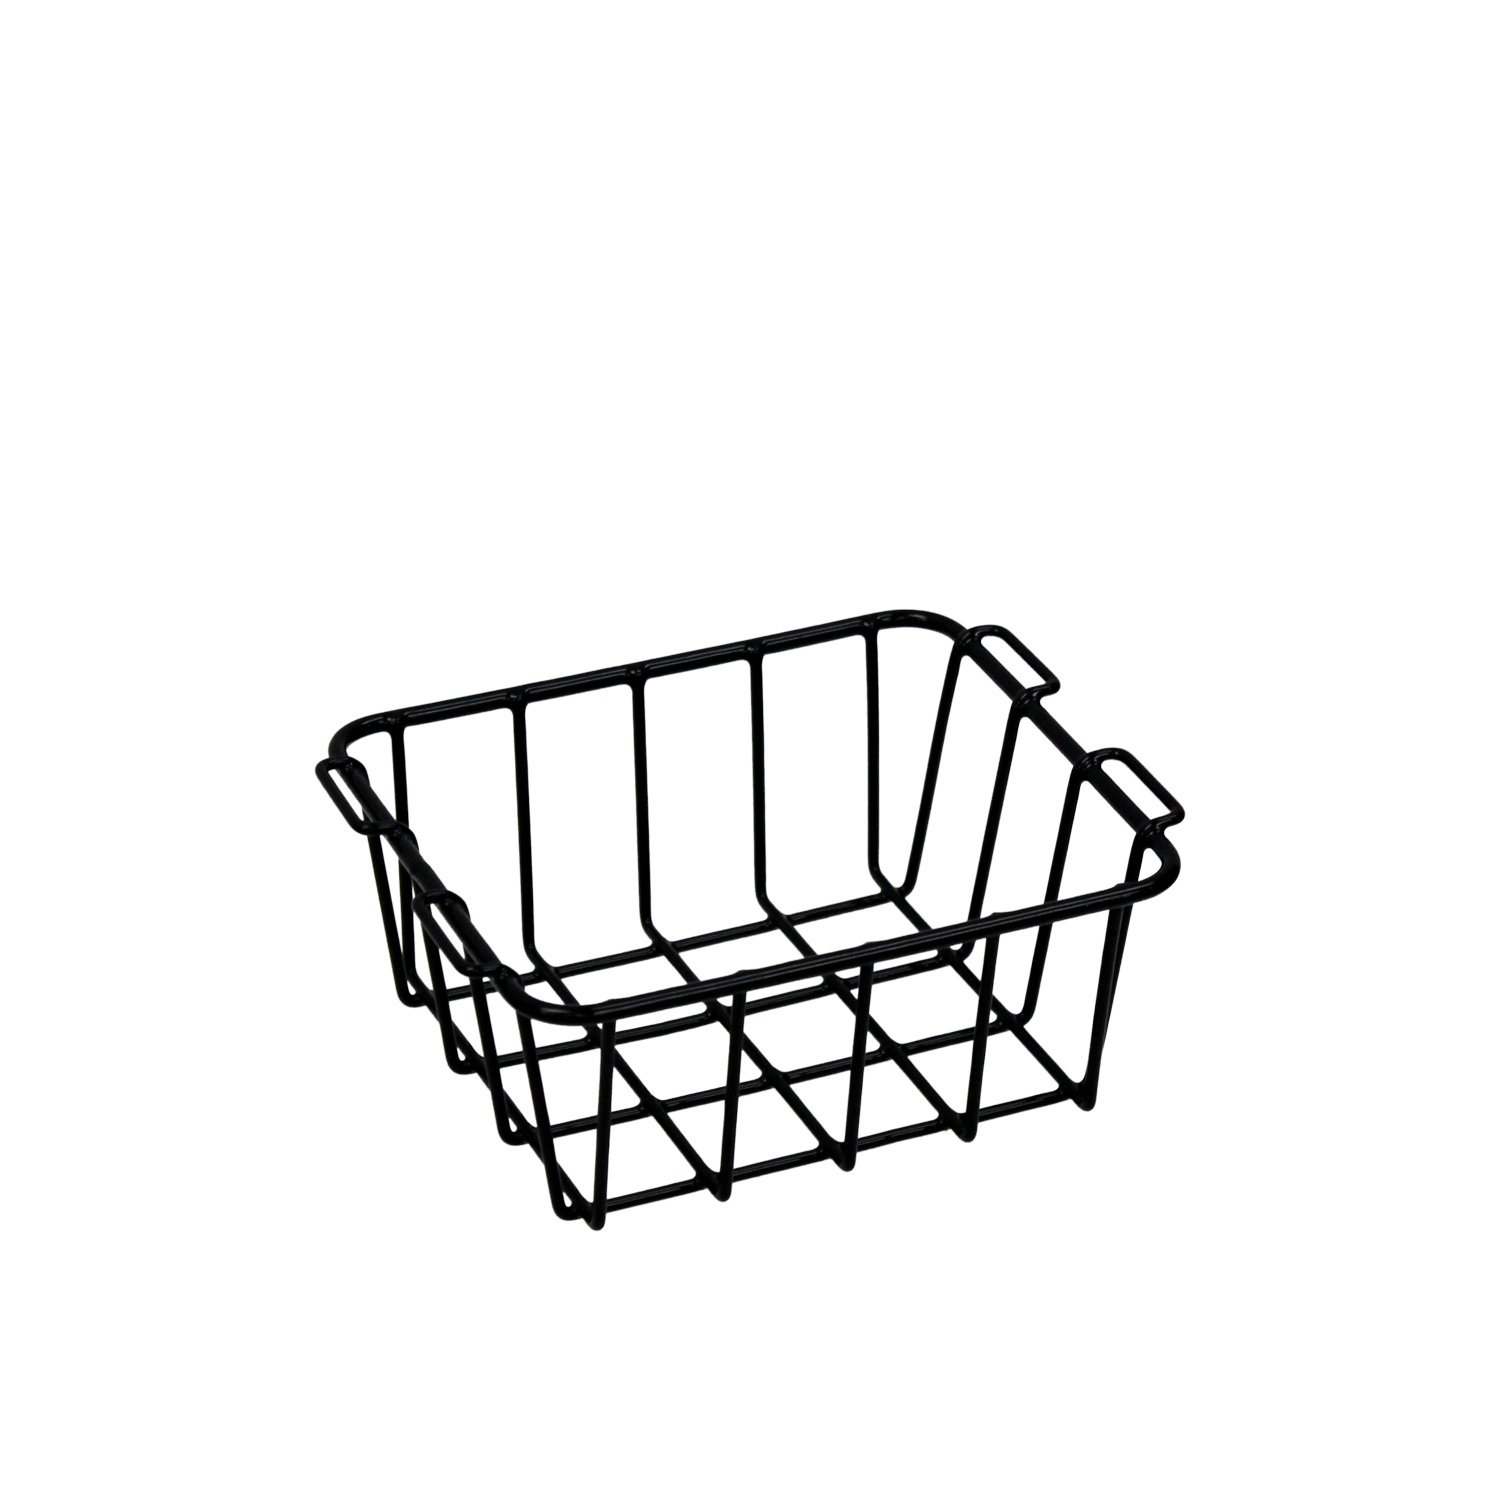 Meadowcraft Black 20 Qt Basket Southern Sales and Marketing Group CKR-512184